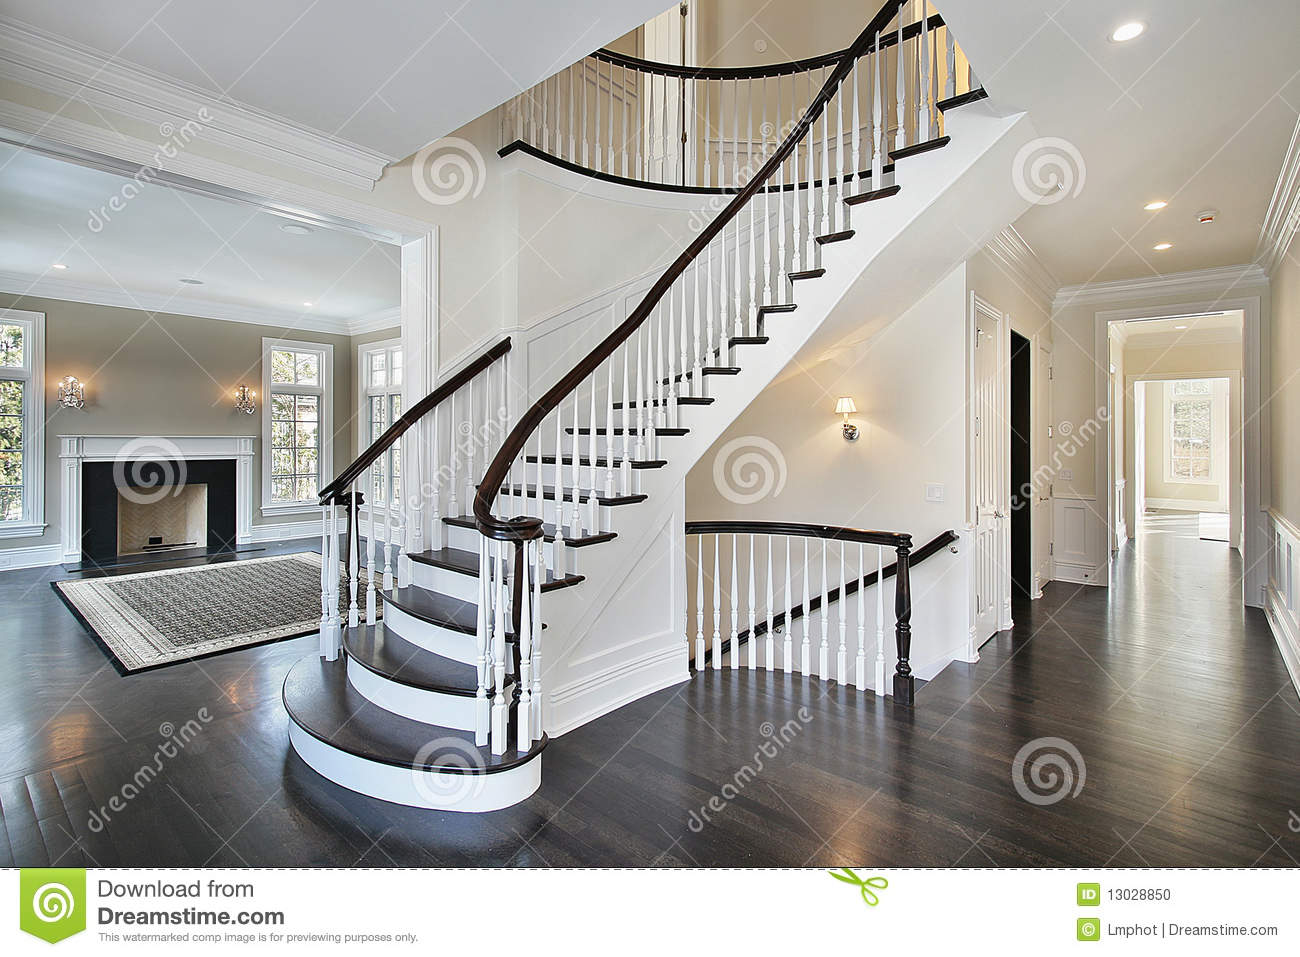 Foyer With Curved Staircase Stock Photo - Image: 13028850